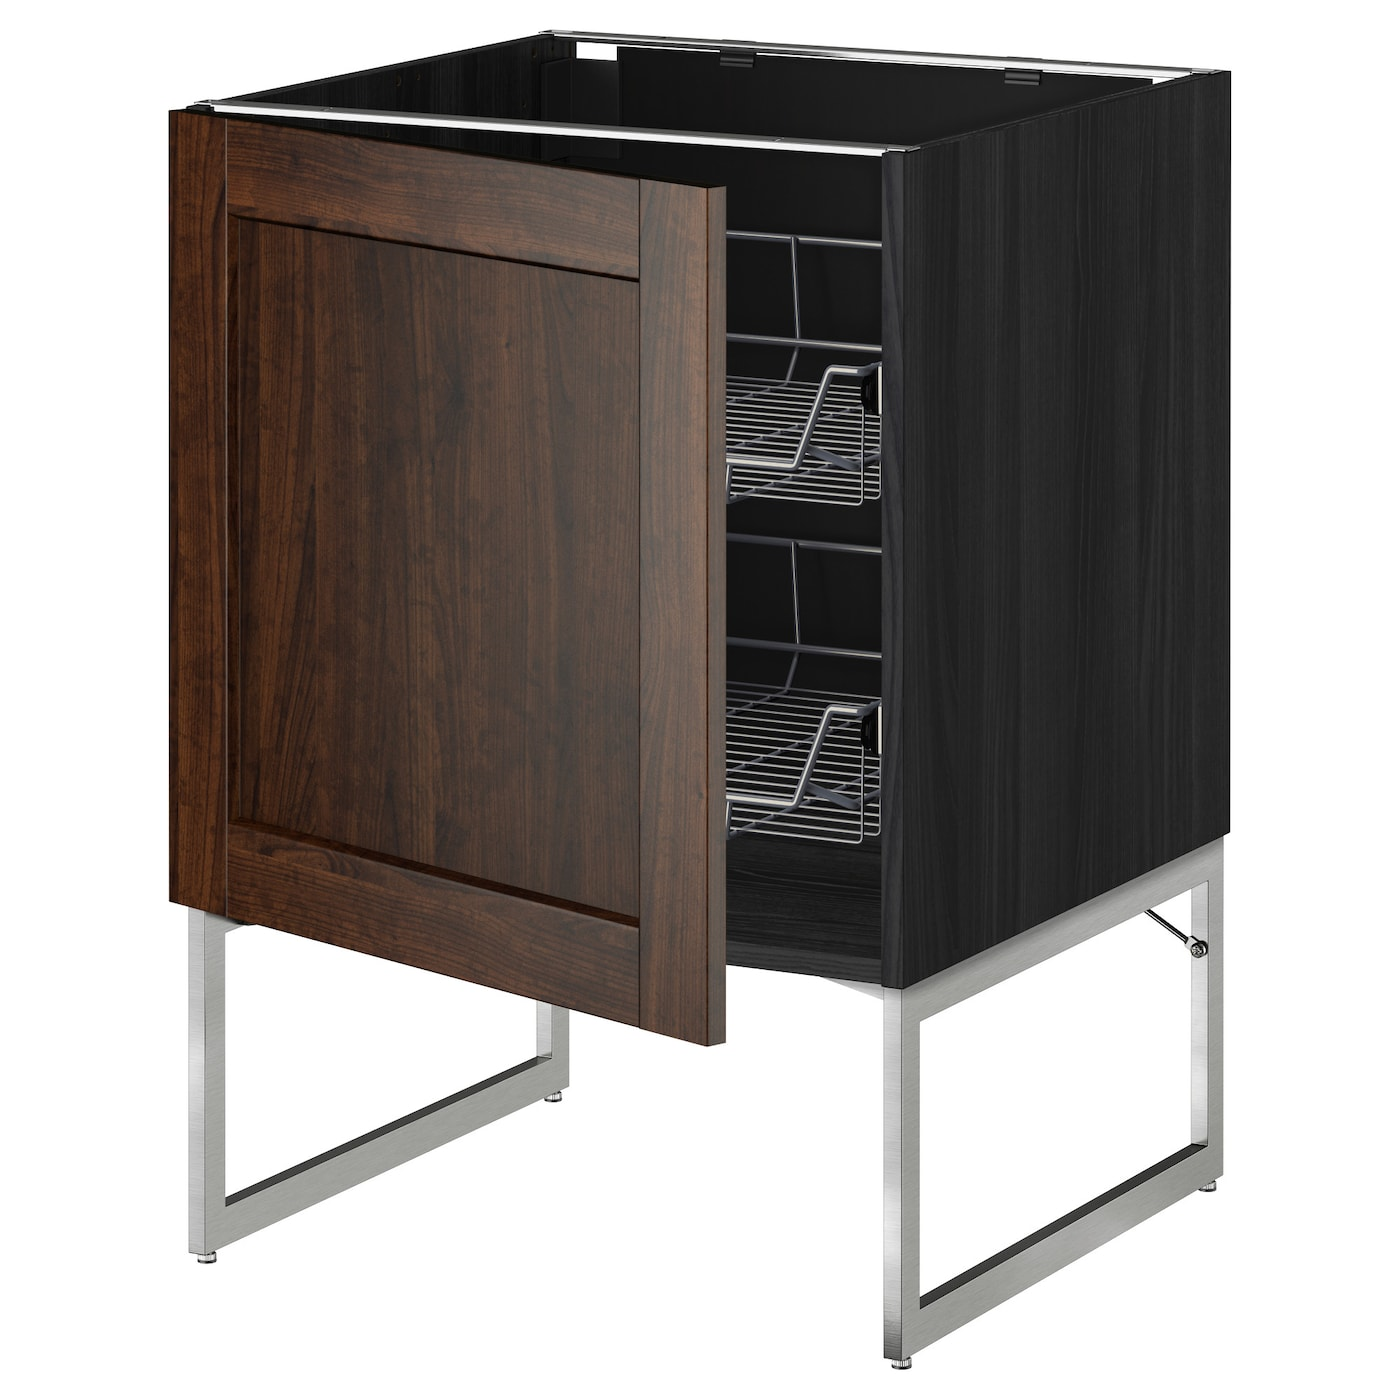 metod base cabinet with wire baskets black edserum brown. Black Bedroom Furniture Sets. Home Design Ideas